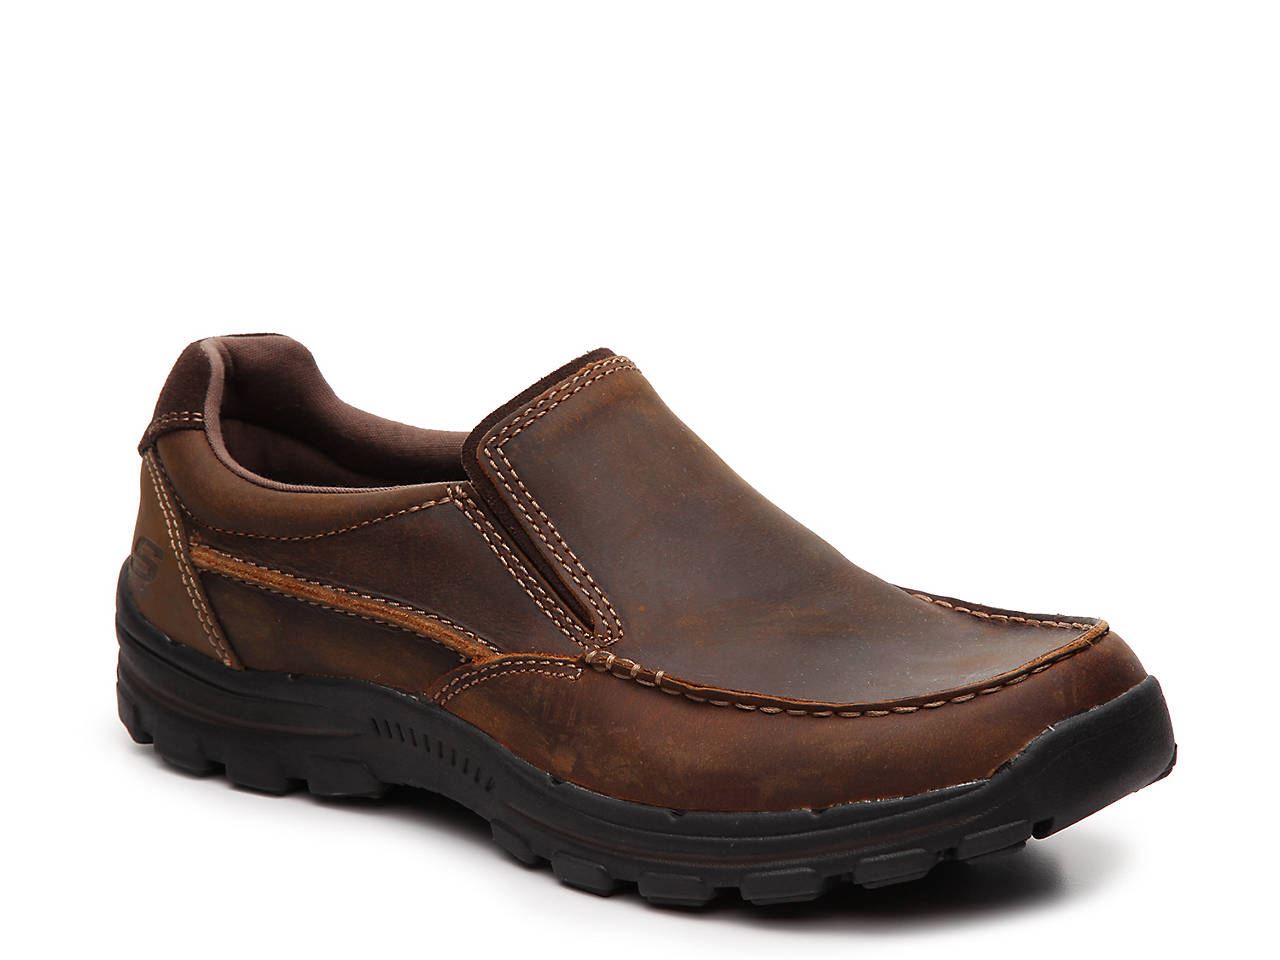 Sketchers Leather Mens Shoes